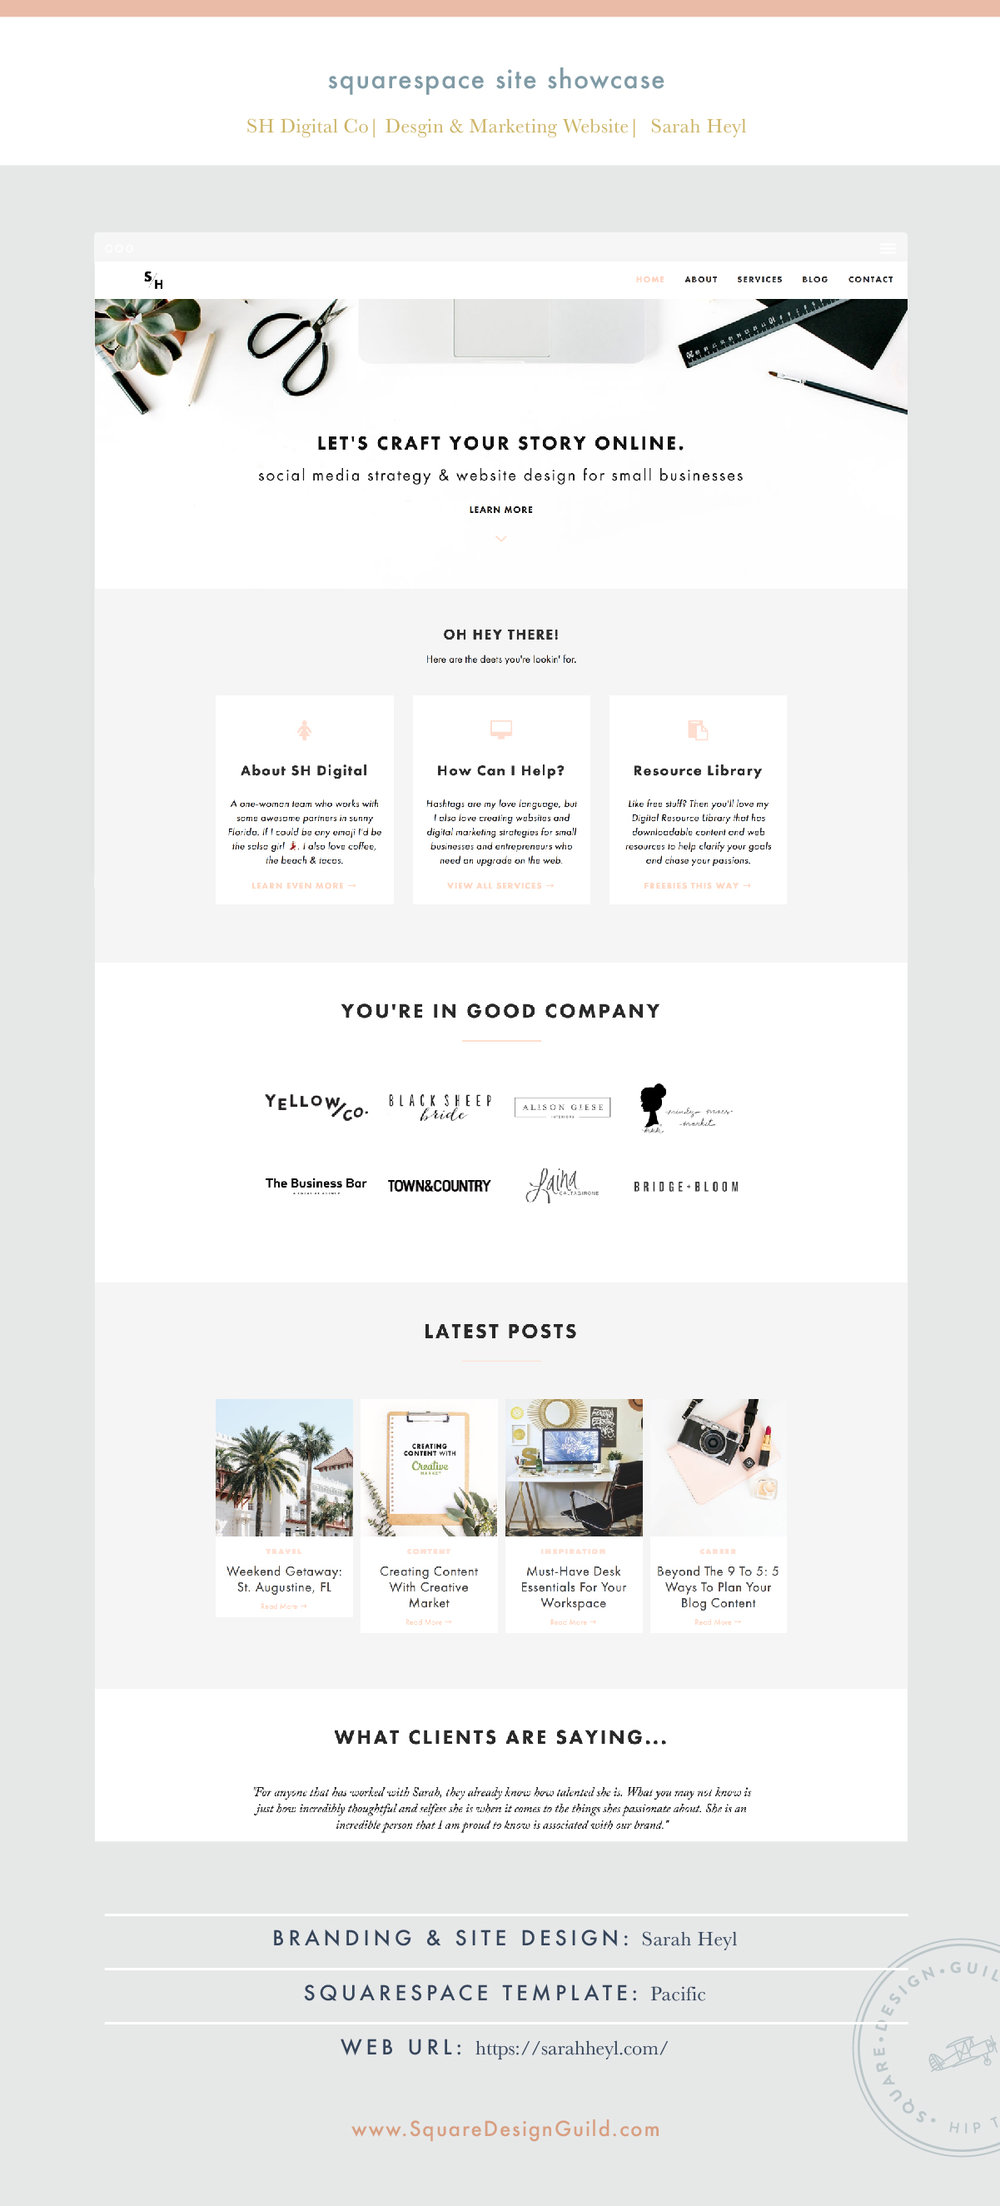 Square Design Guild | Site Showcase | SH Digital Co by Sarah Heyl | Pacific Template